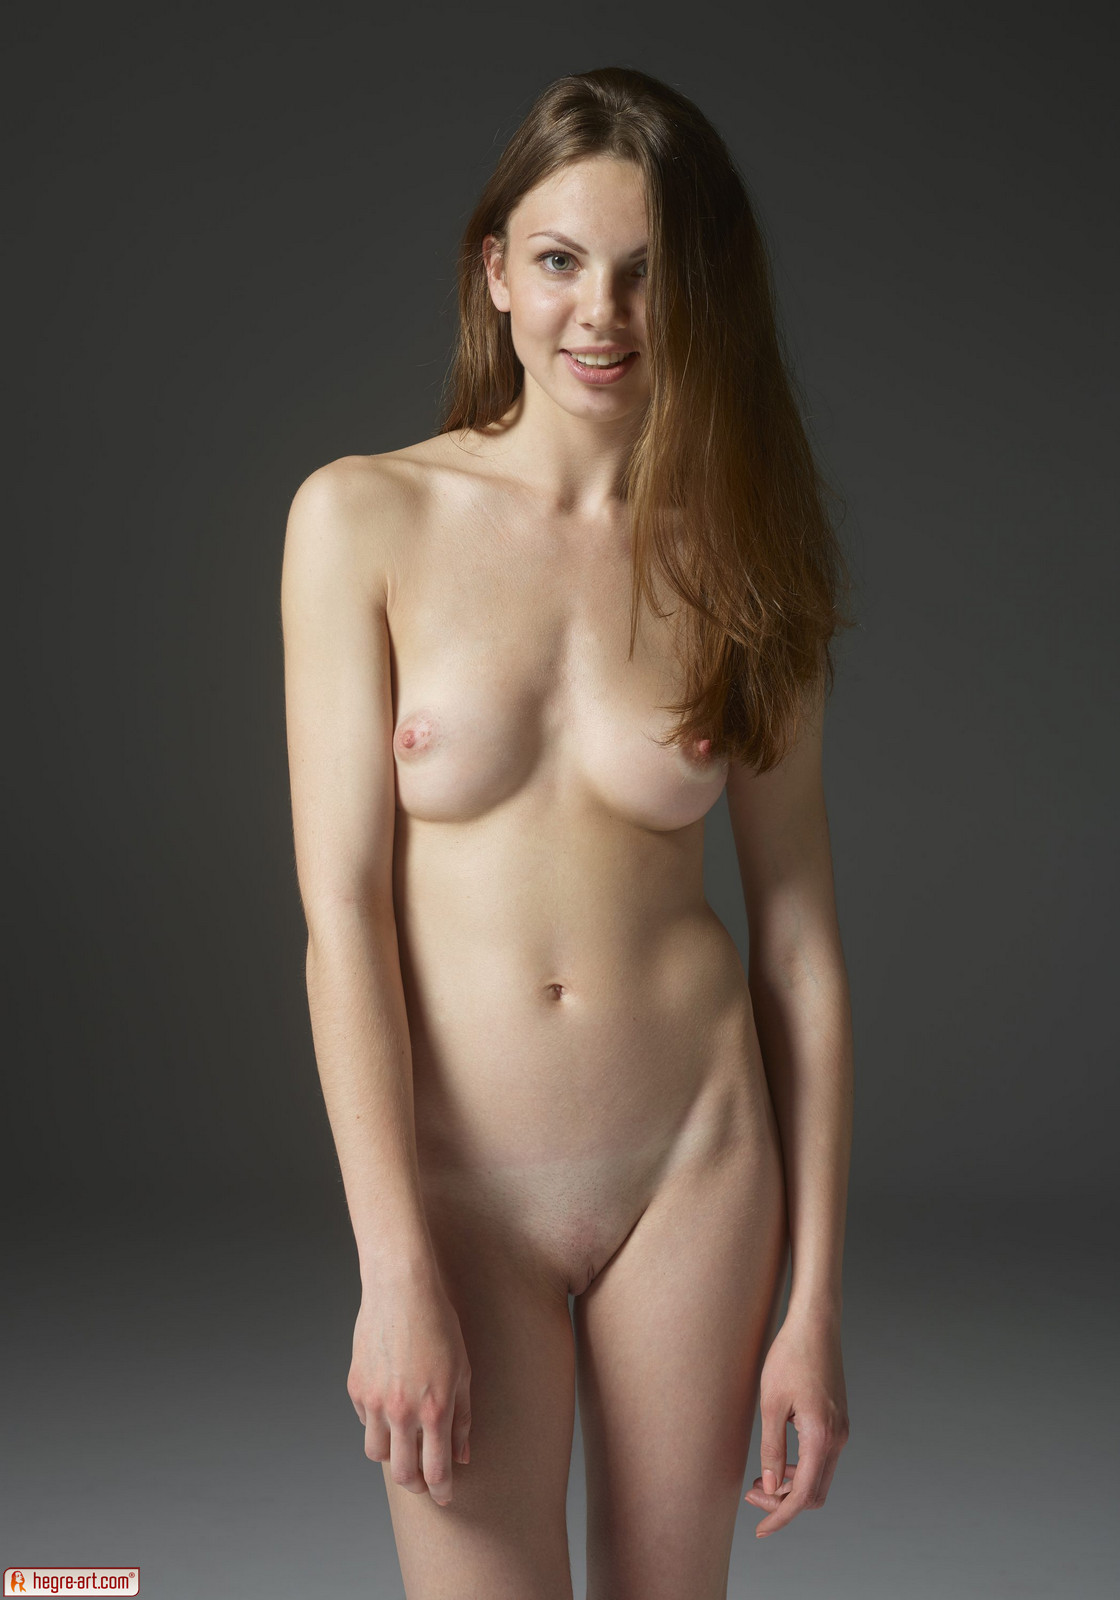 Angel williamd nude the